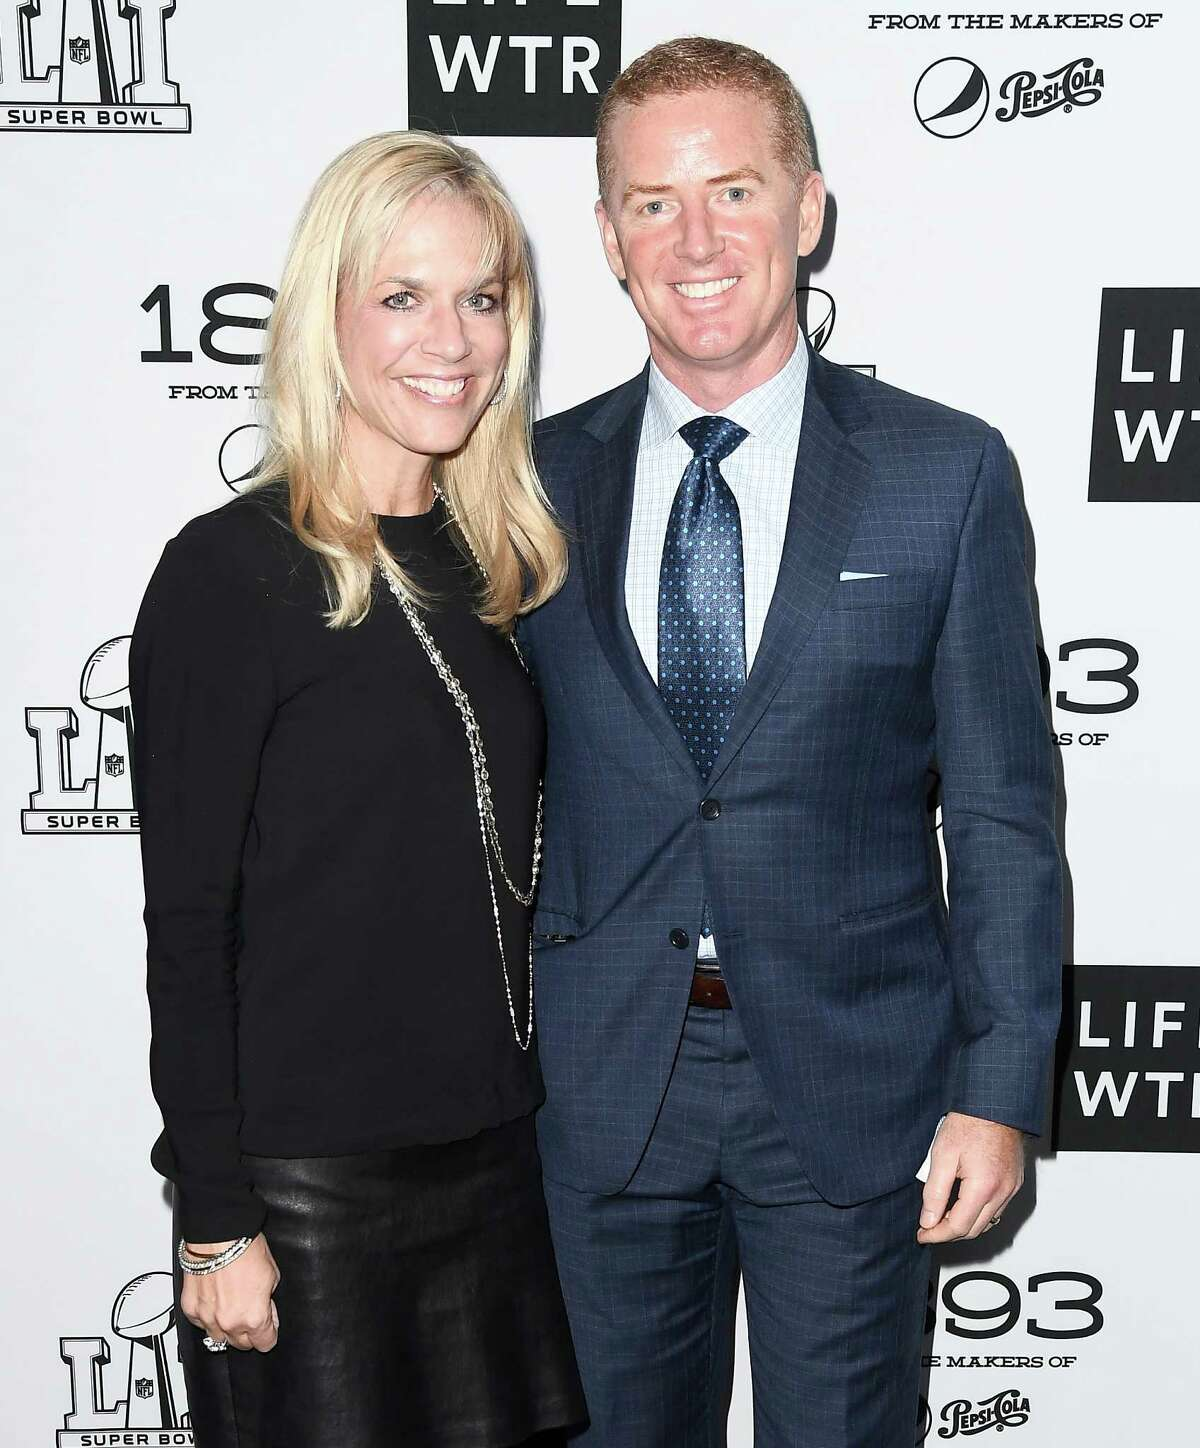 Jason Garrett and his wife Brill Garret tattend LIFEWTR: Art After Dark, including 1893, at Club Nomadic during Super Bowl LI Weekend on February 3, 2017 in Houston, Texas.